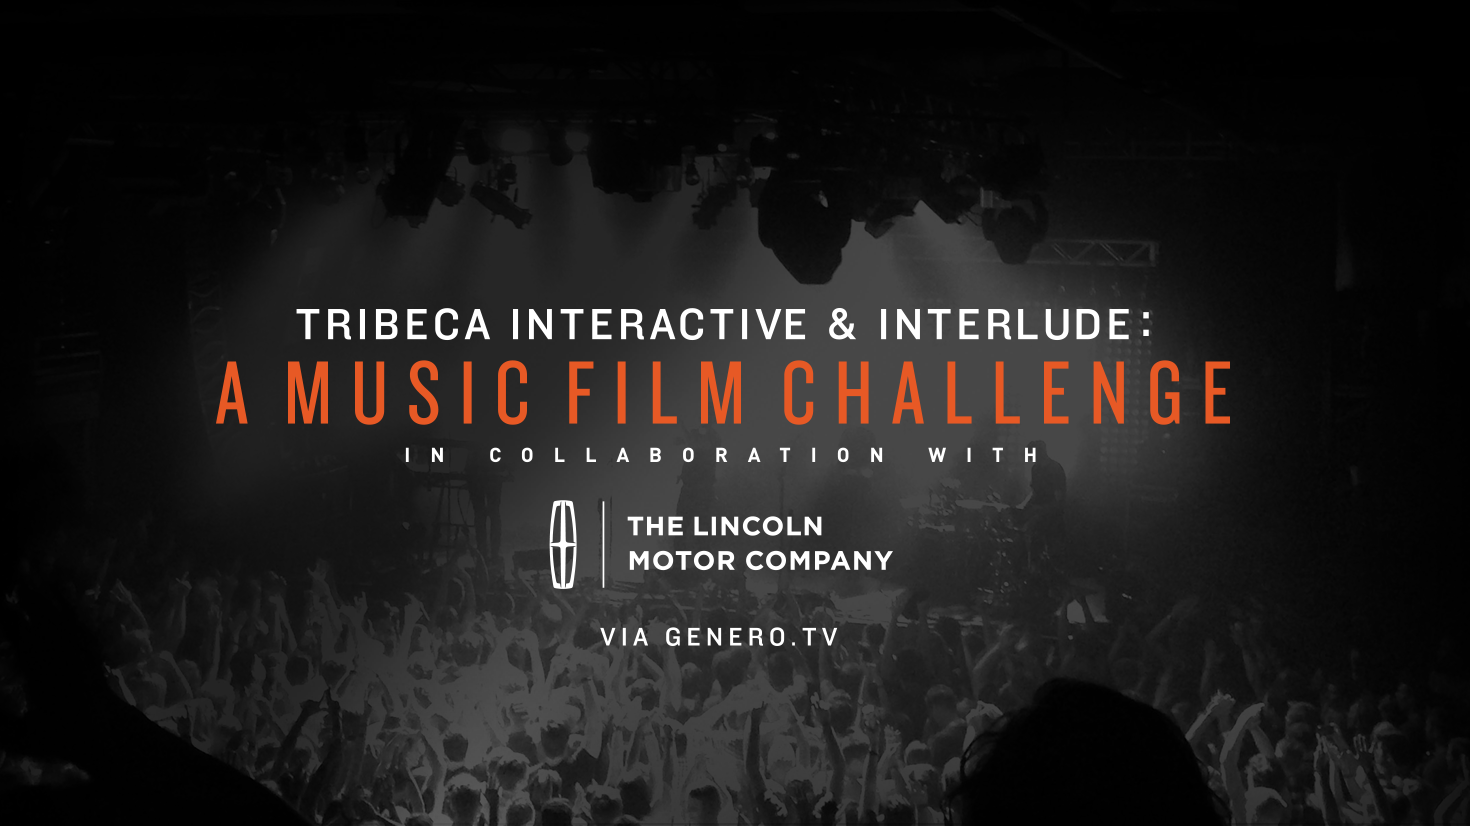 Tribeca Interactive & Interlude: A Music Film Challenge